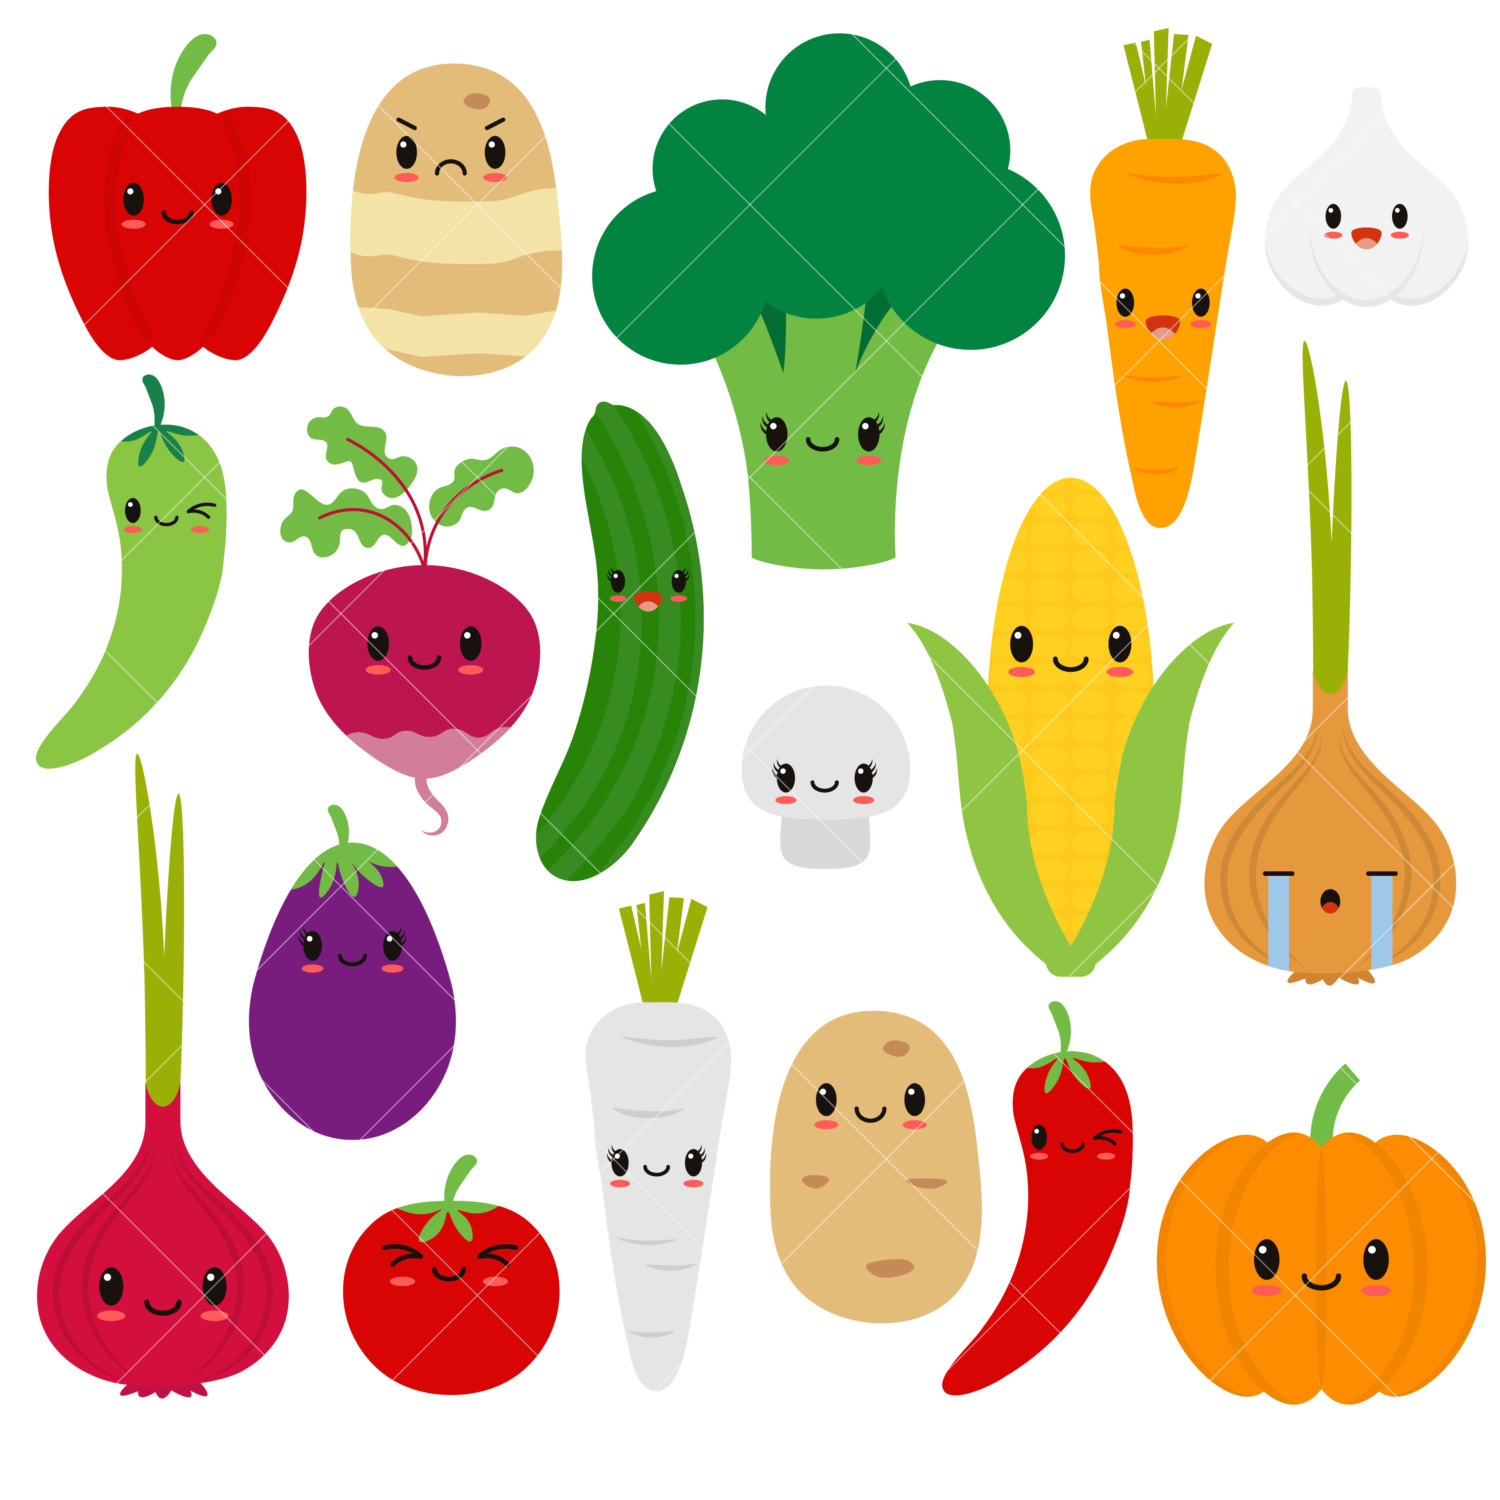 Kawaii vegetables cute vegetable. Veggies clipart